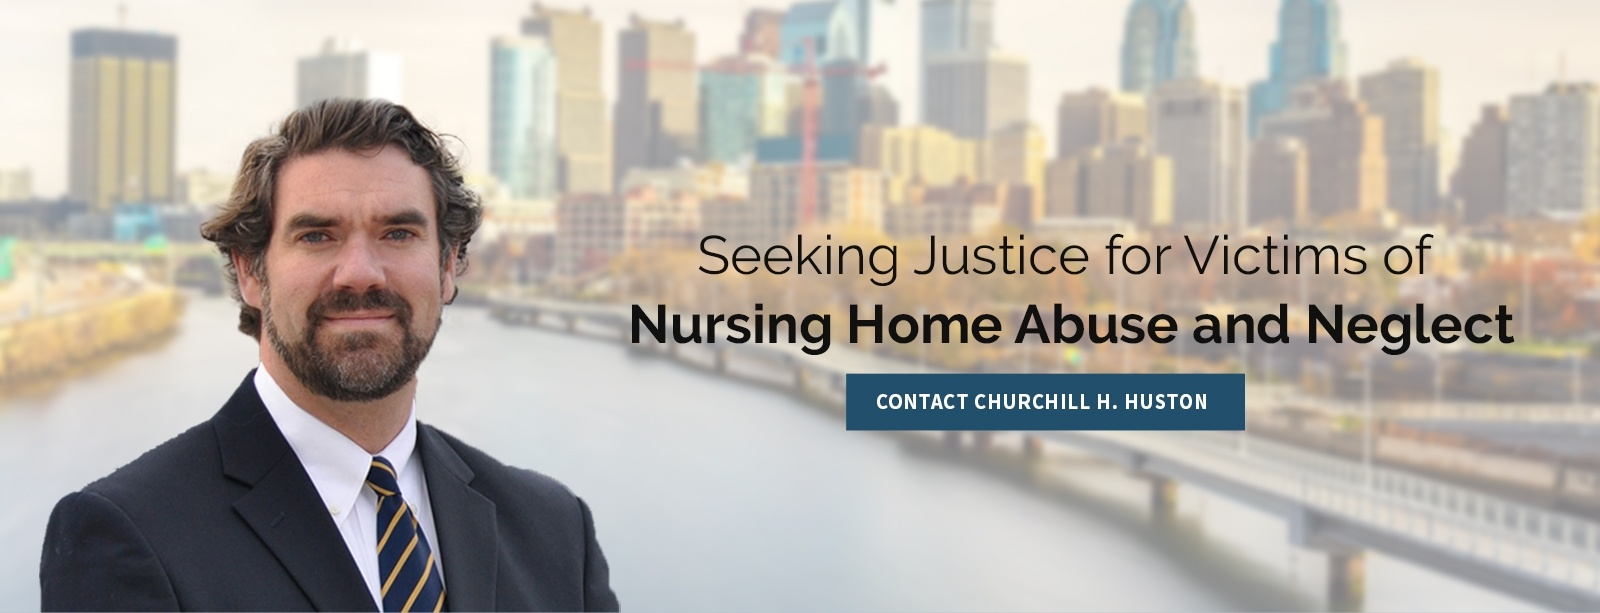 medical negligence lawyers Philadelphia